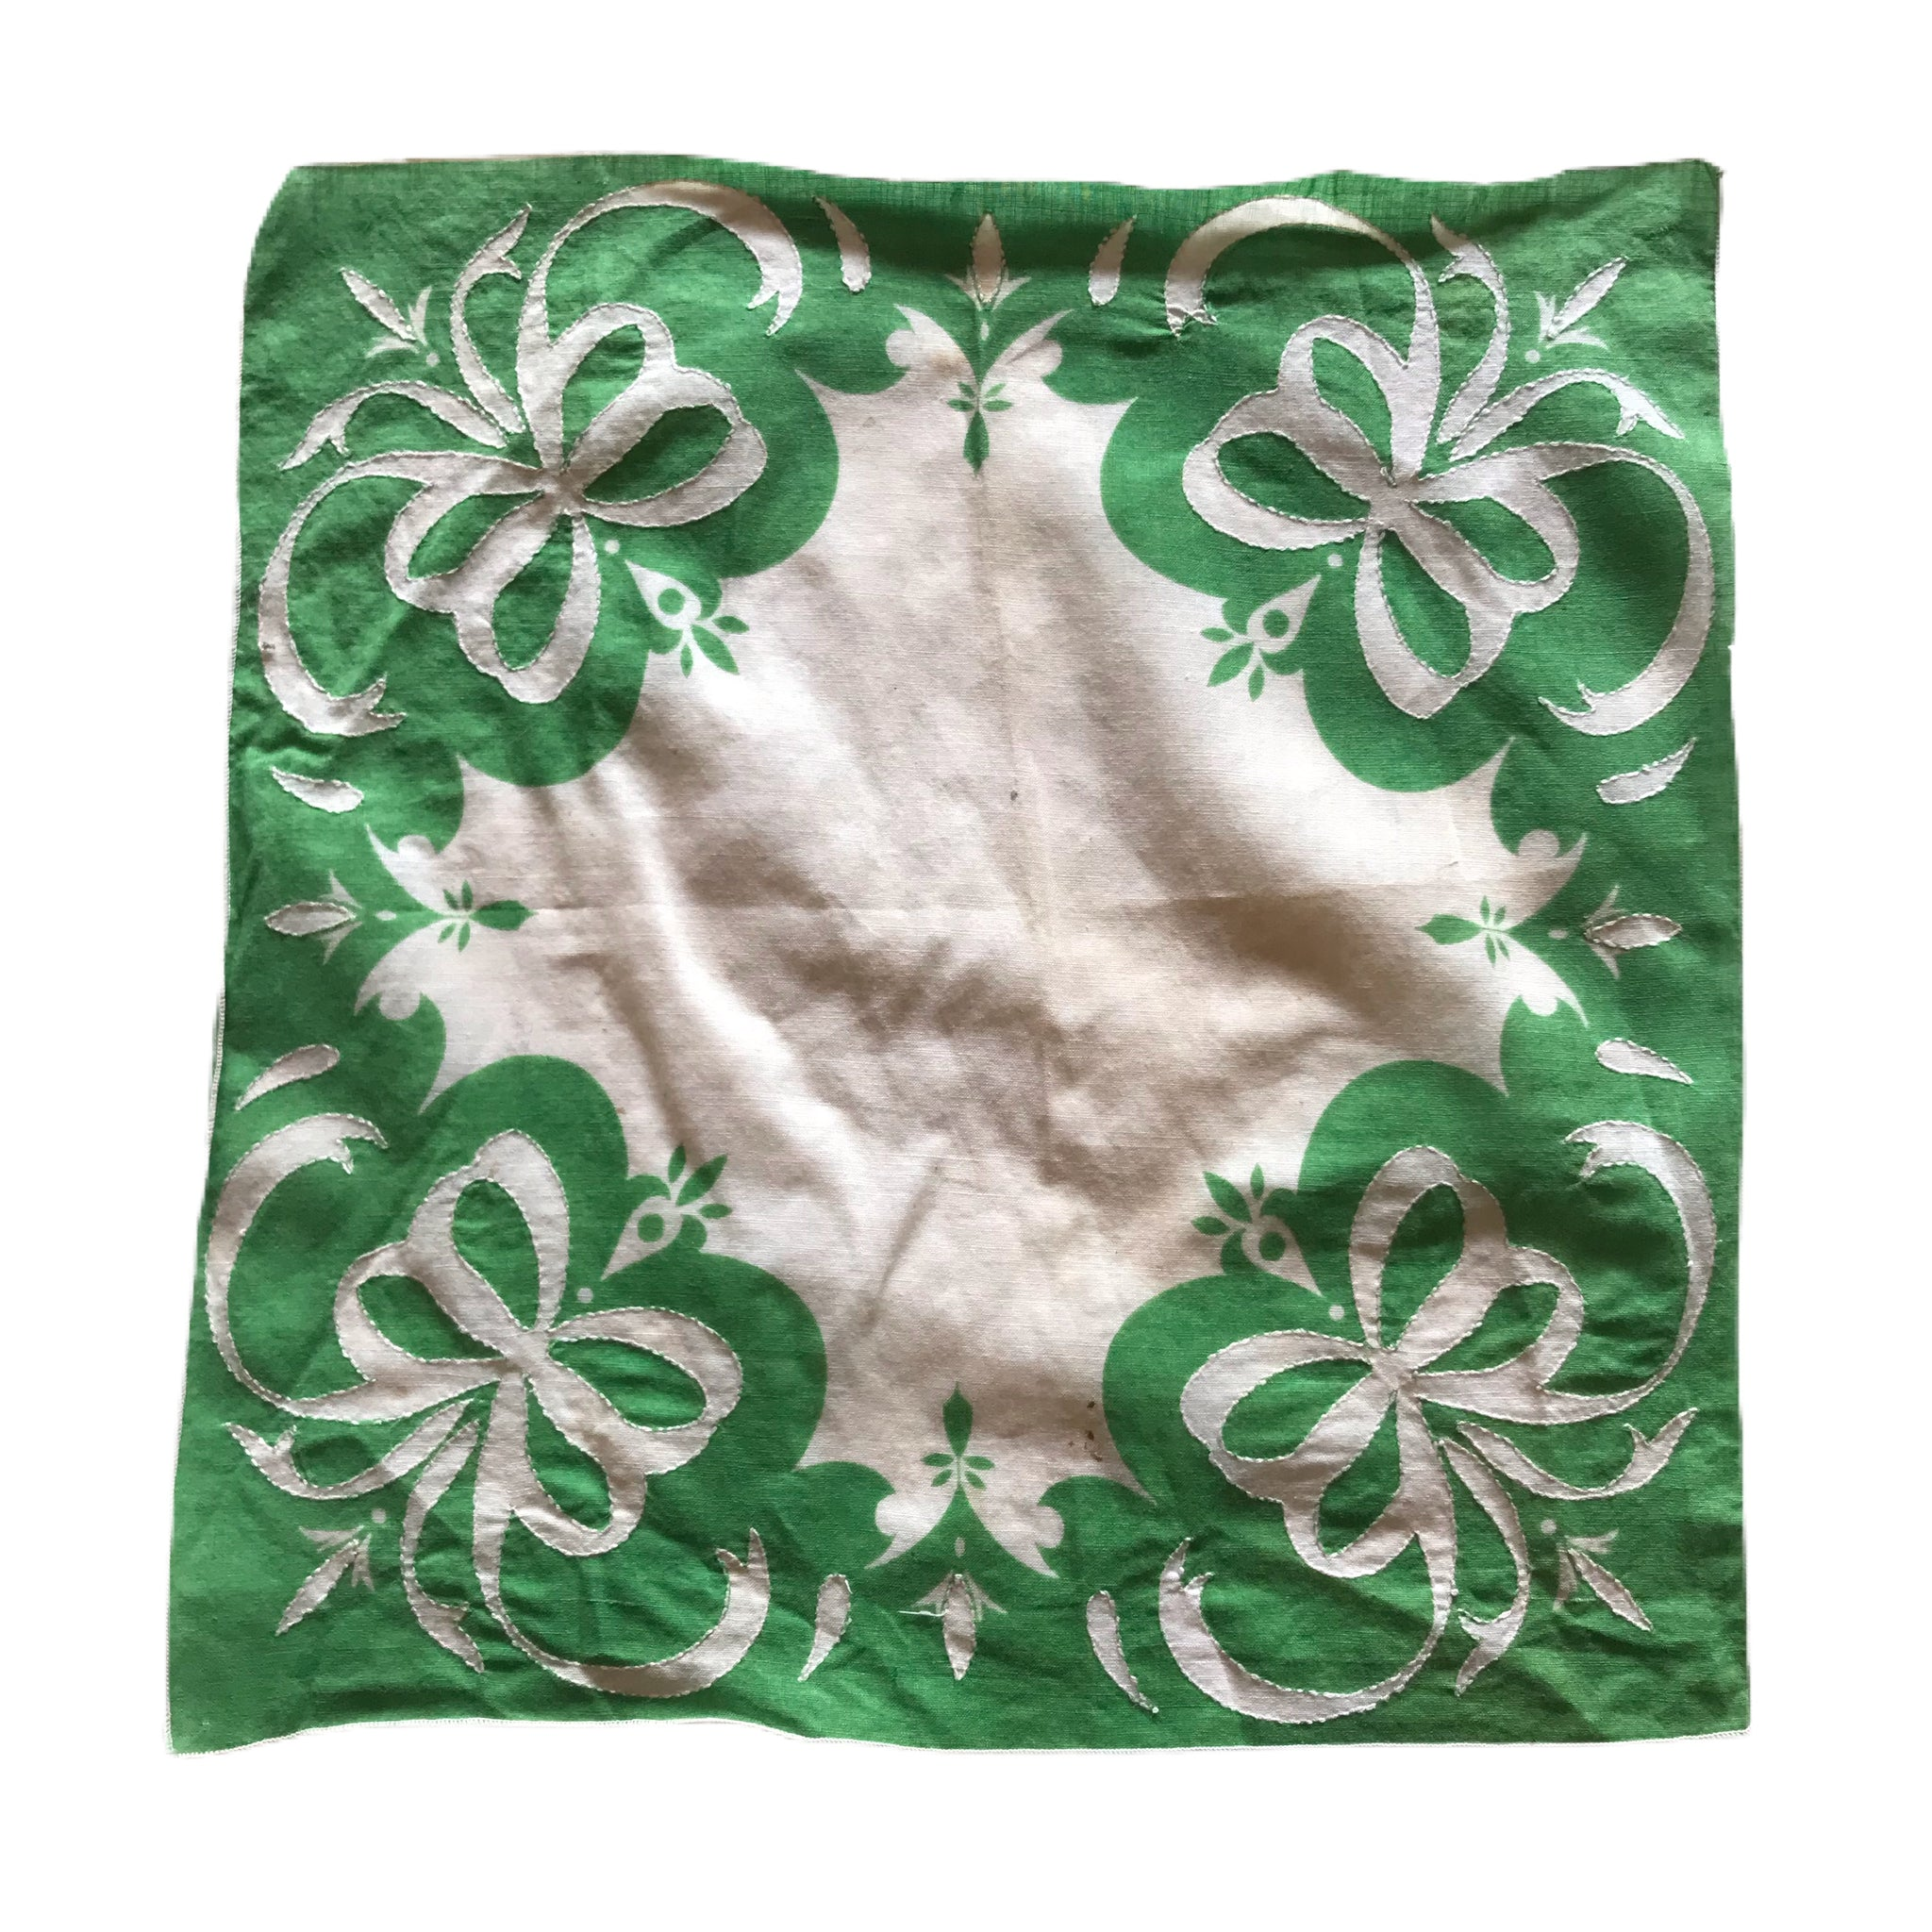 Kelly Green Cutwork Bow Design Cotton Handkerchief circa 1930s